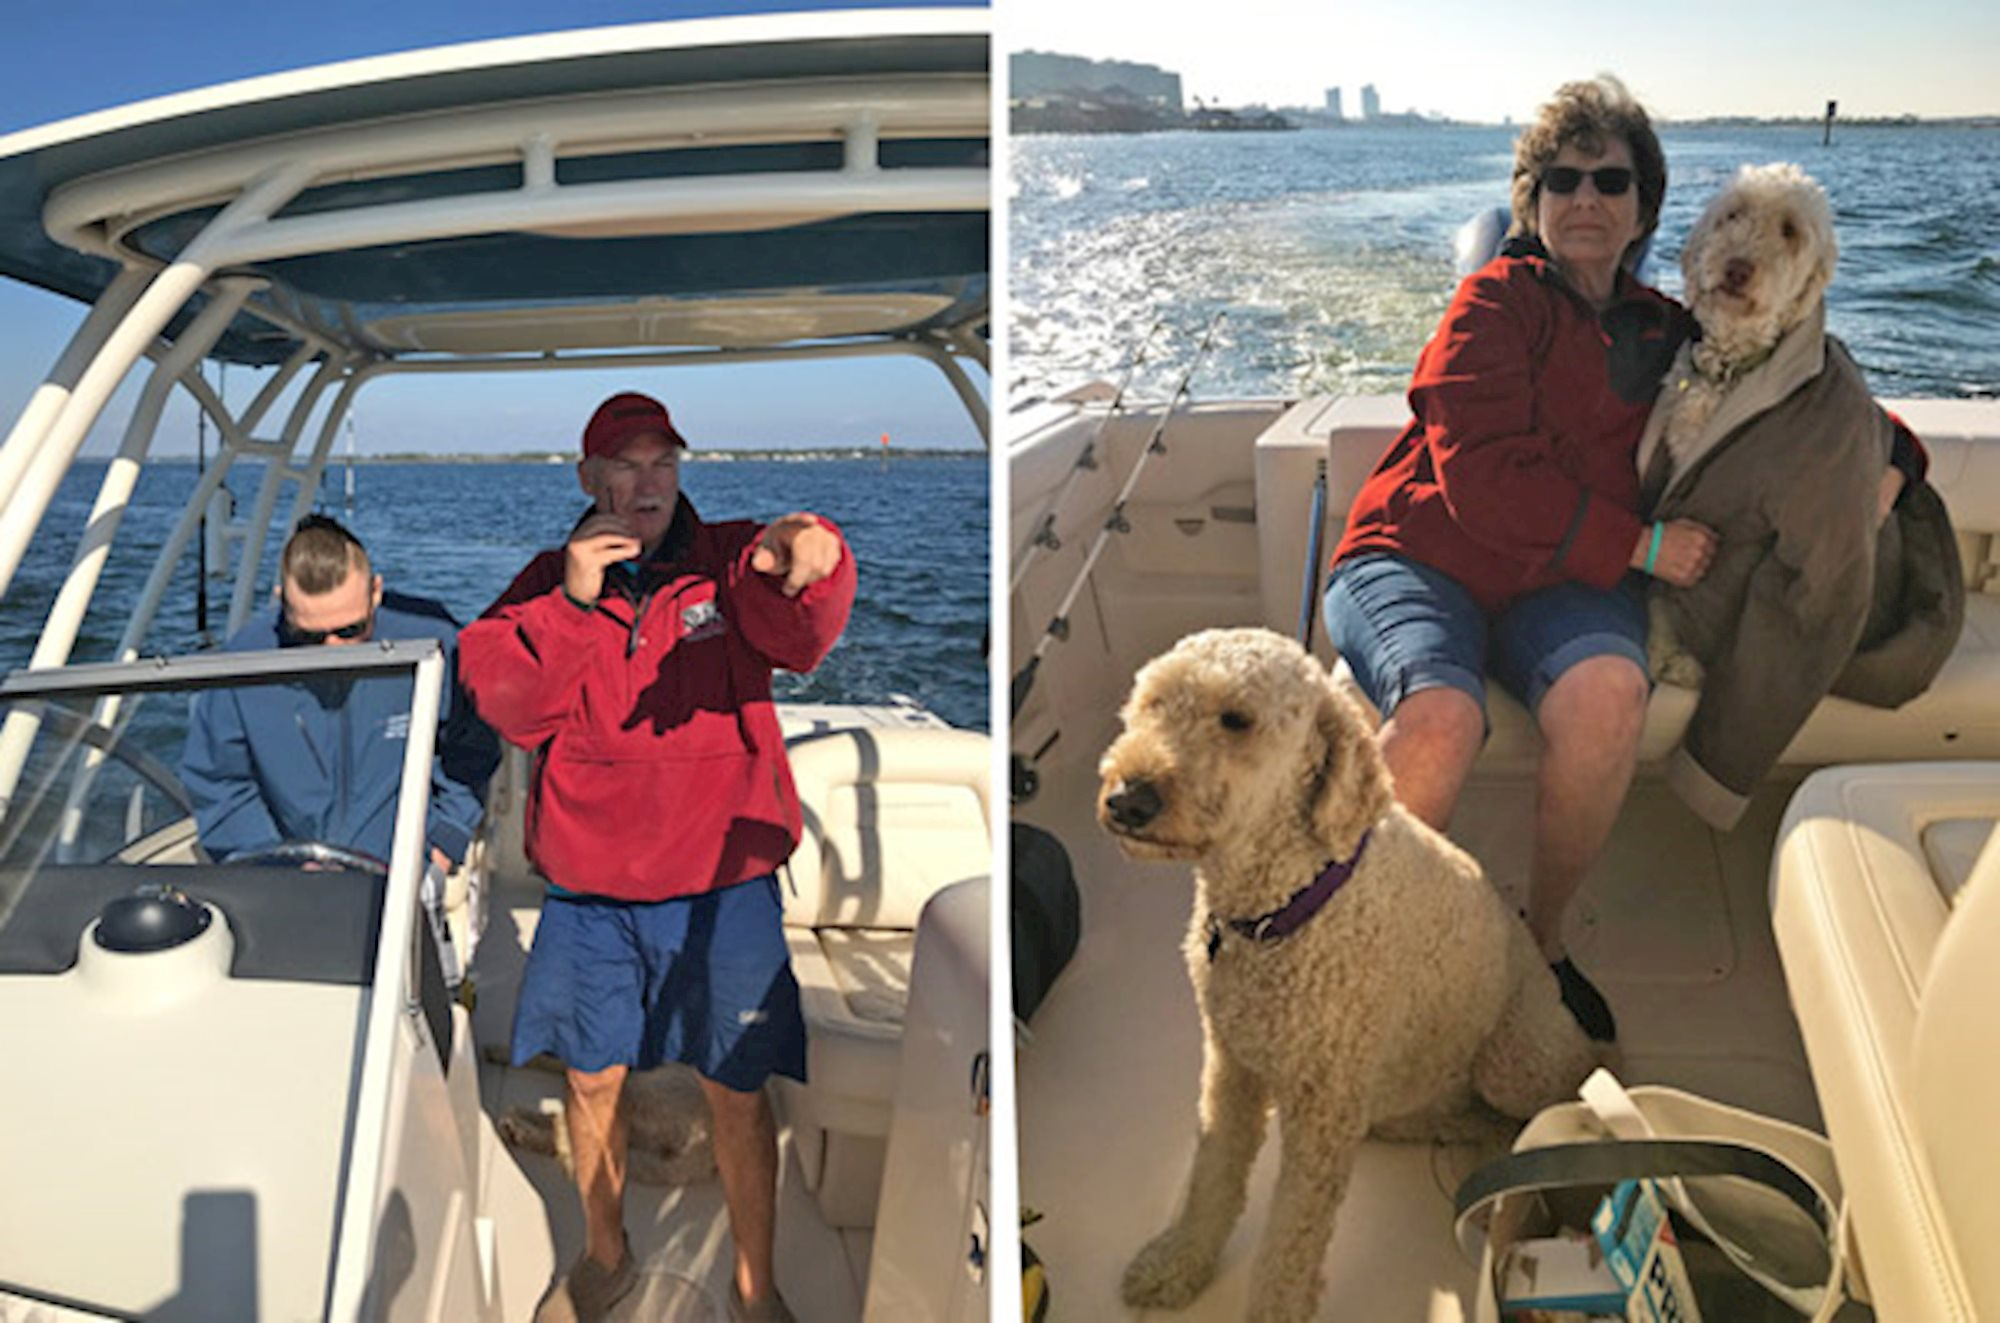 Grady family enjoys a day on the water with their dogs on this dual console boat.